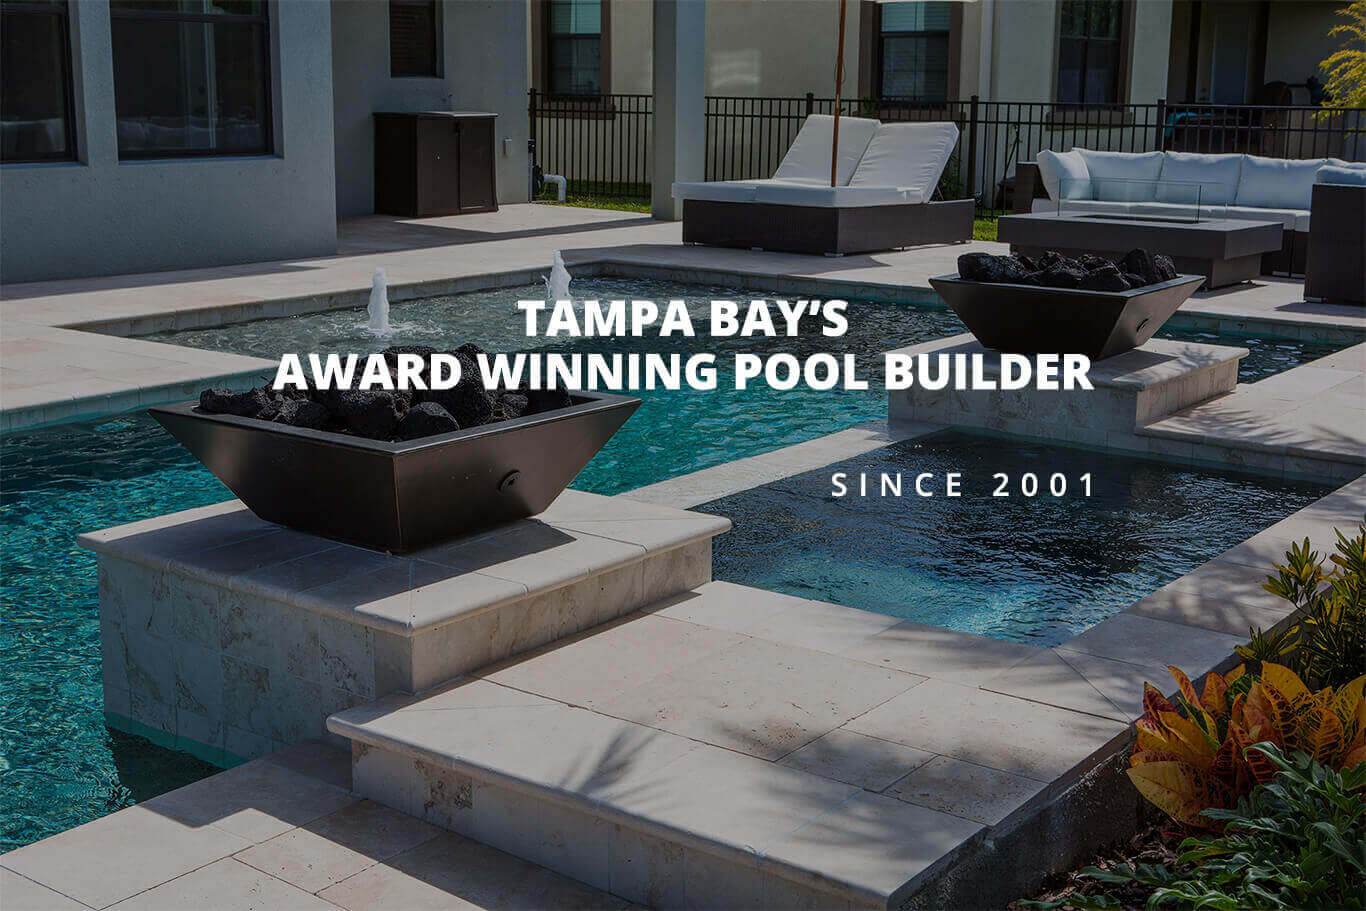 Pool Builder Tampa Bay Award Winning